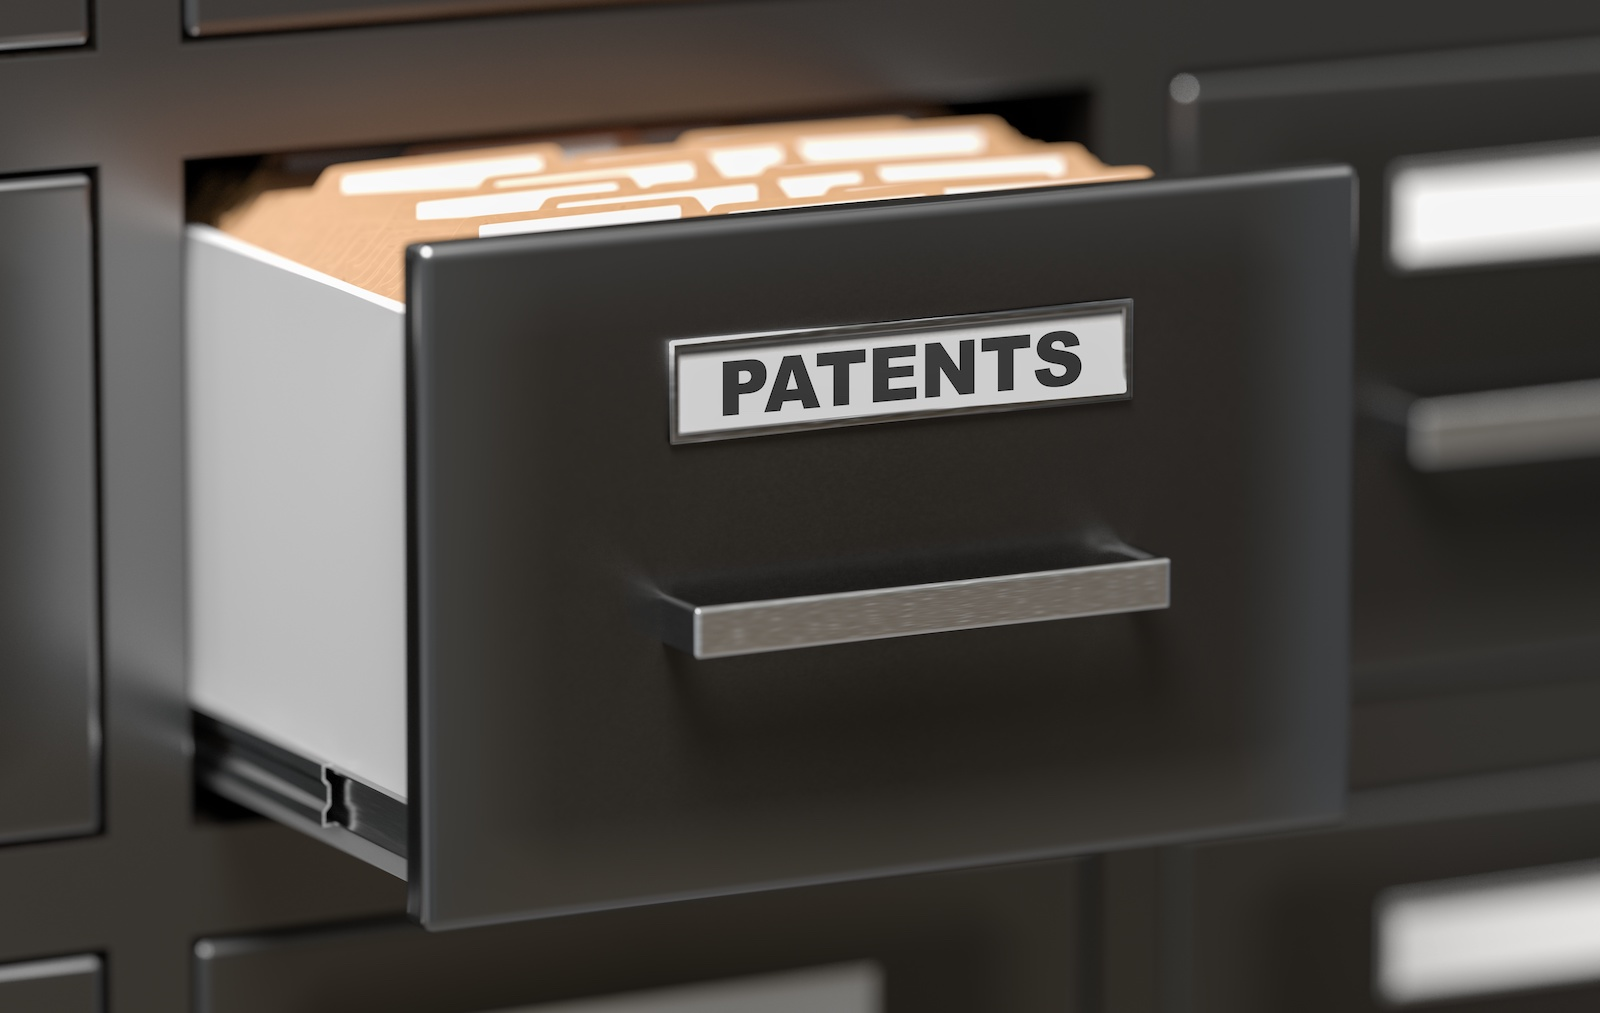 Patent documents